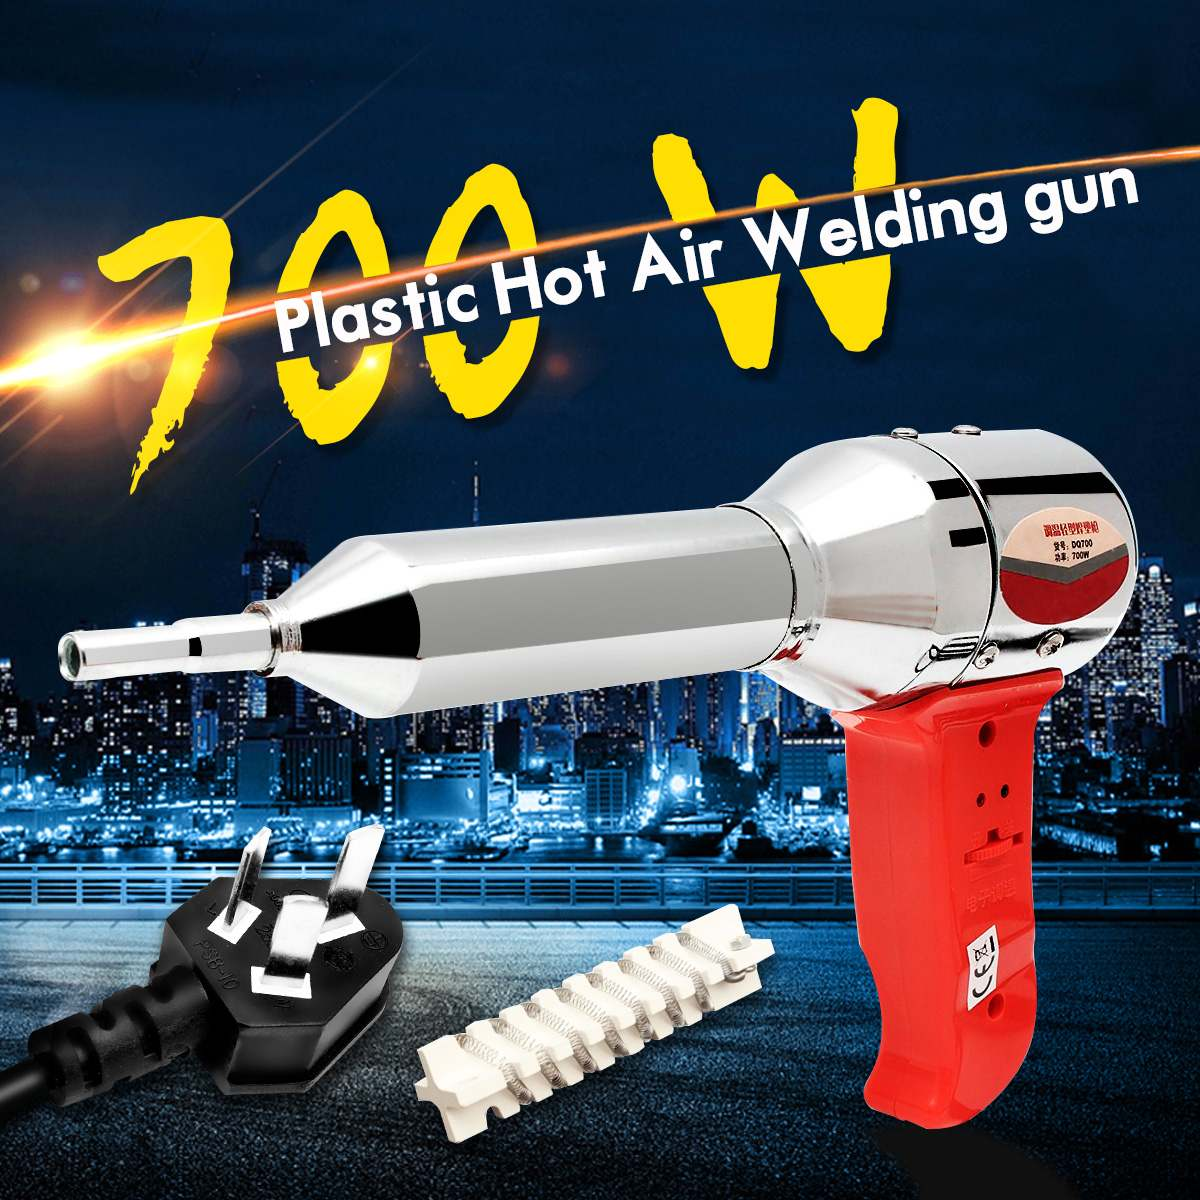 220-240V Welding Gun Electric Hot Air Soldering Gun Fast Heat Welding Tool Temperature 100-450 Degree With Ceramic Heater